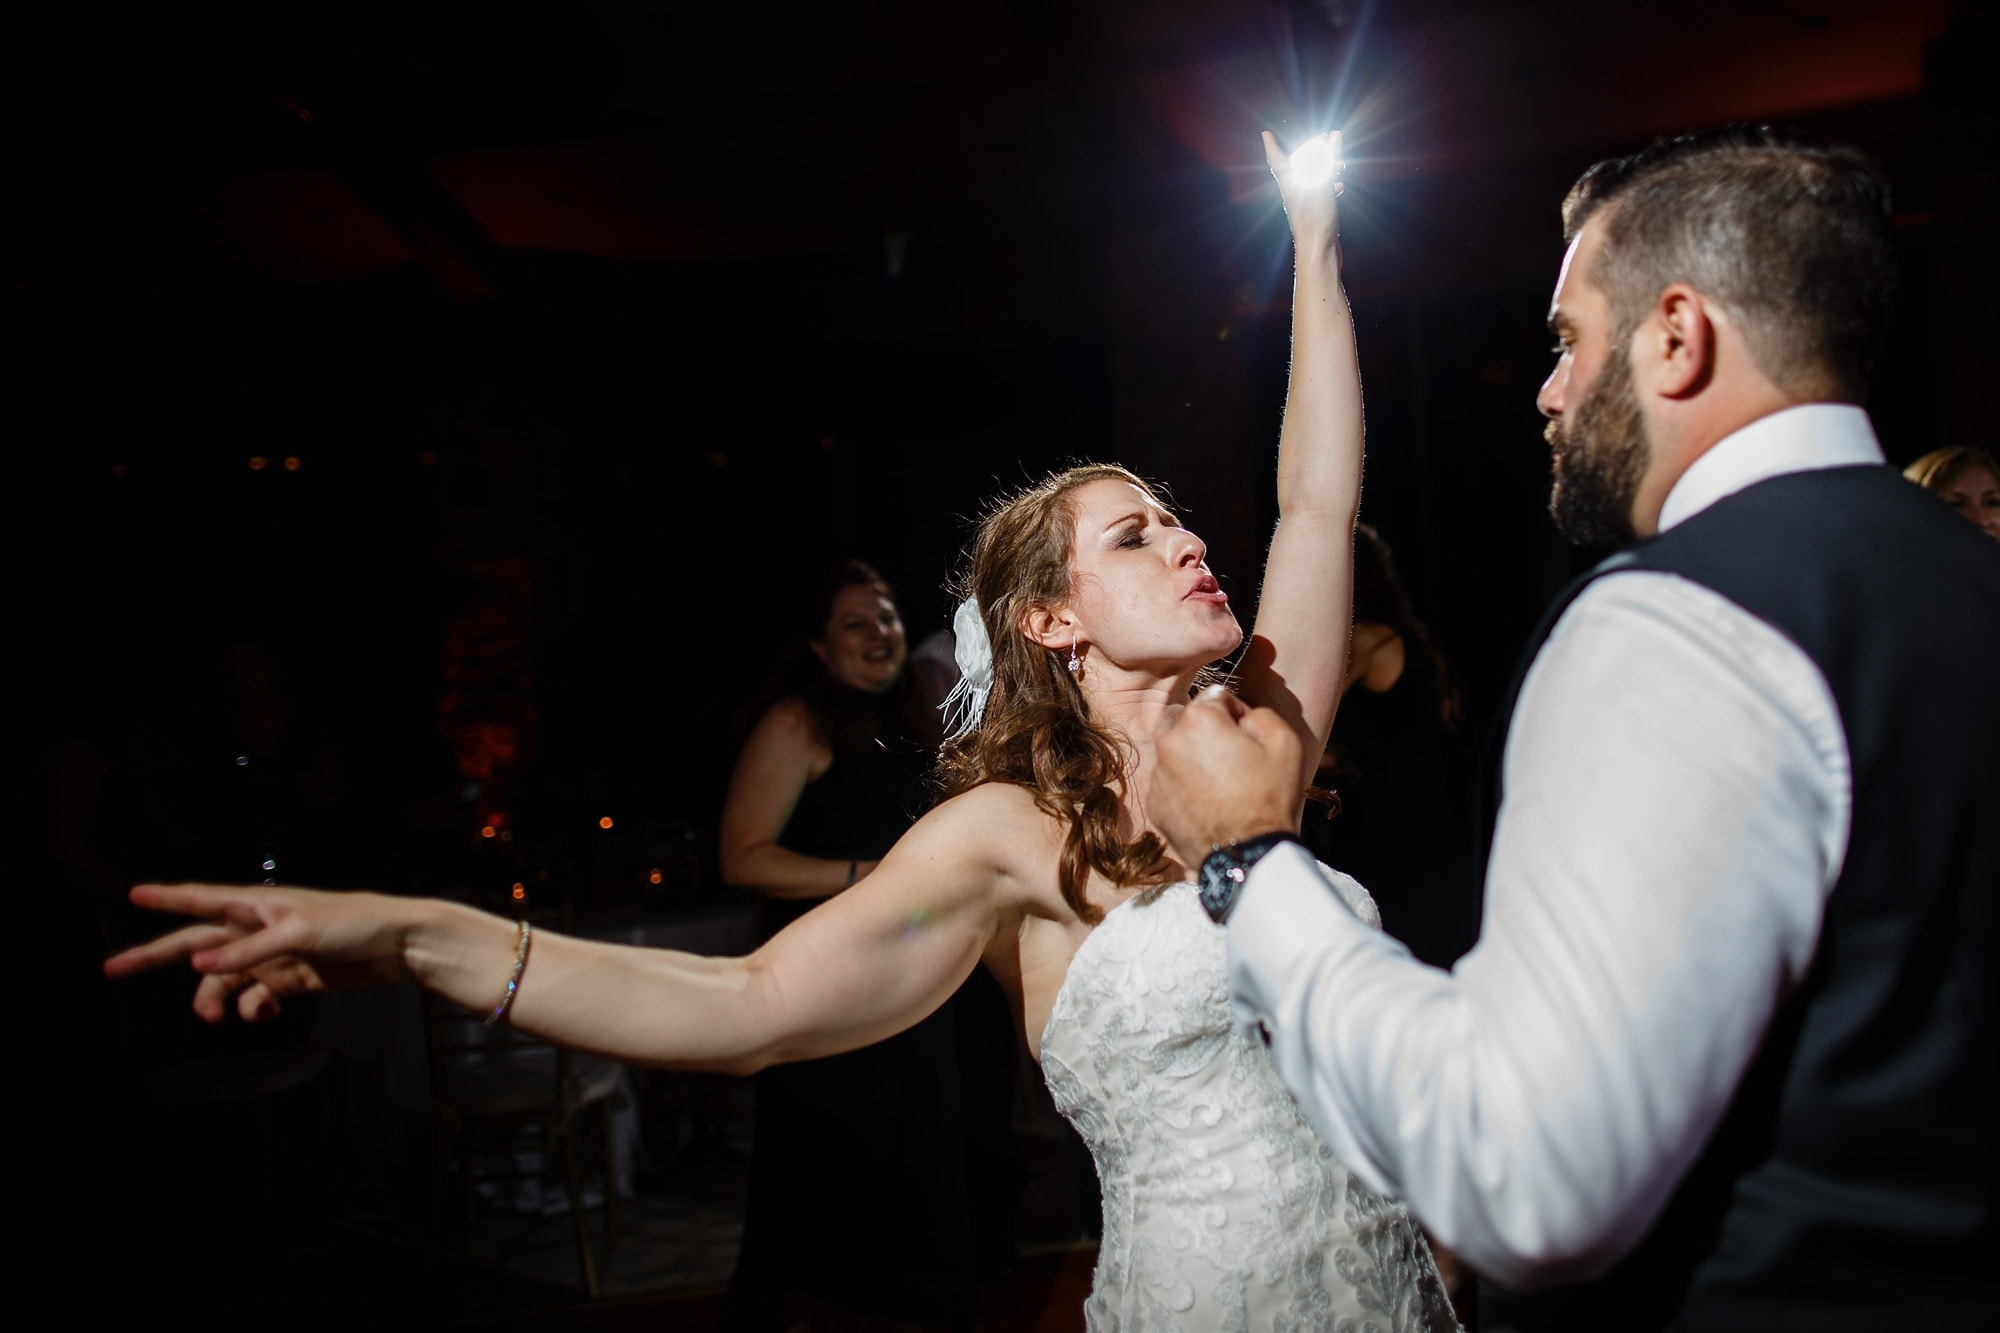 The bride and groom dance together during their reception at Garden of the Gods Club